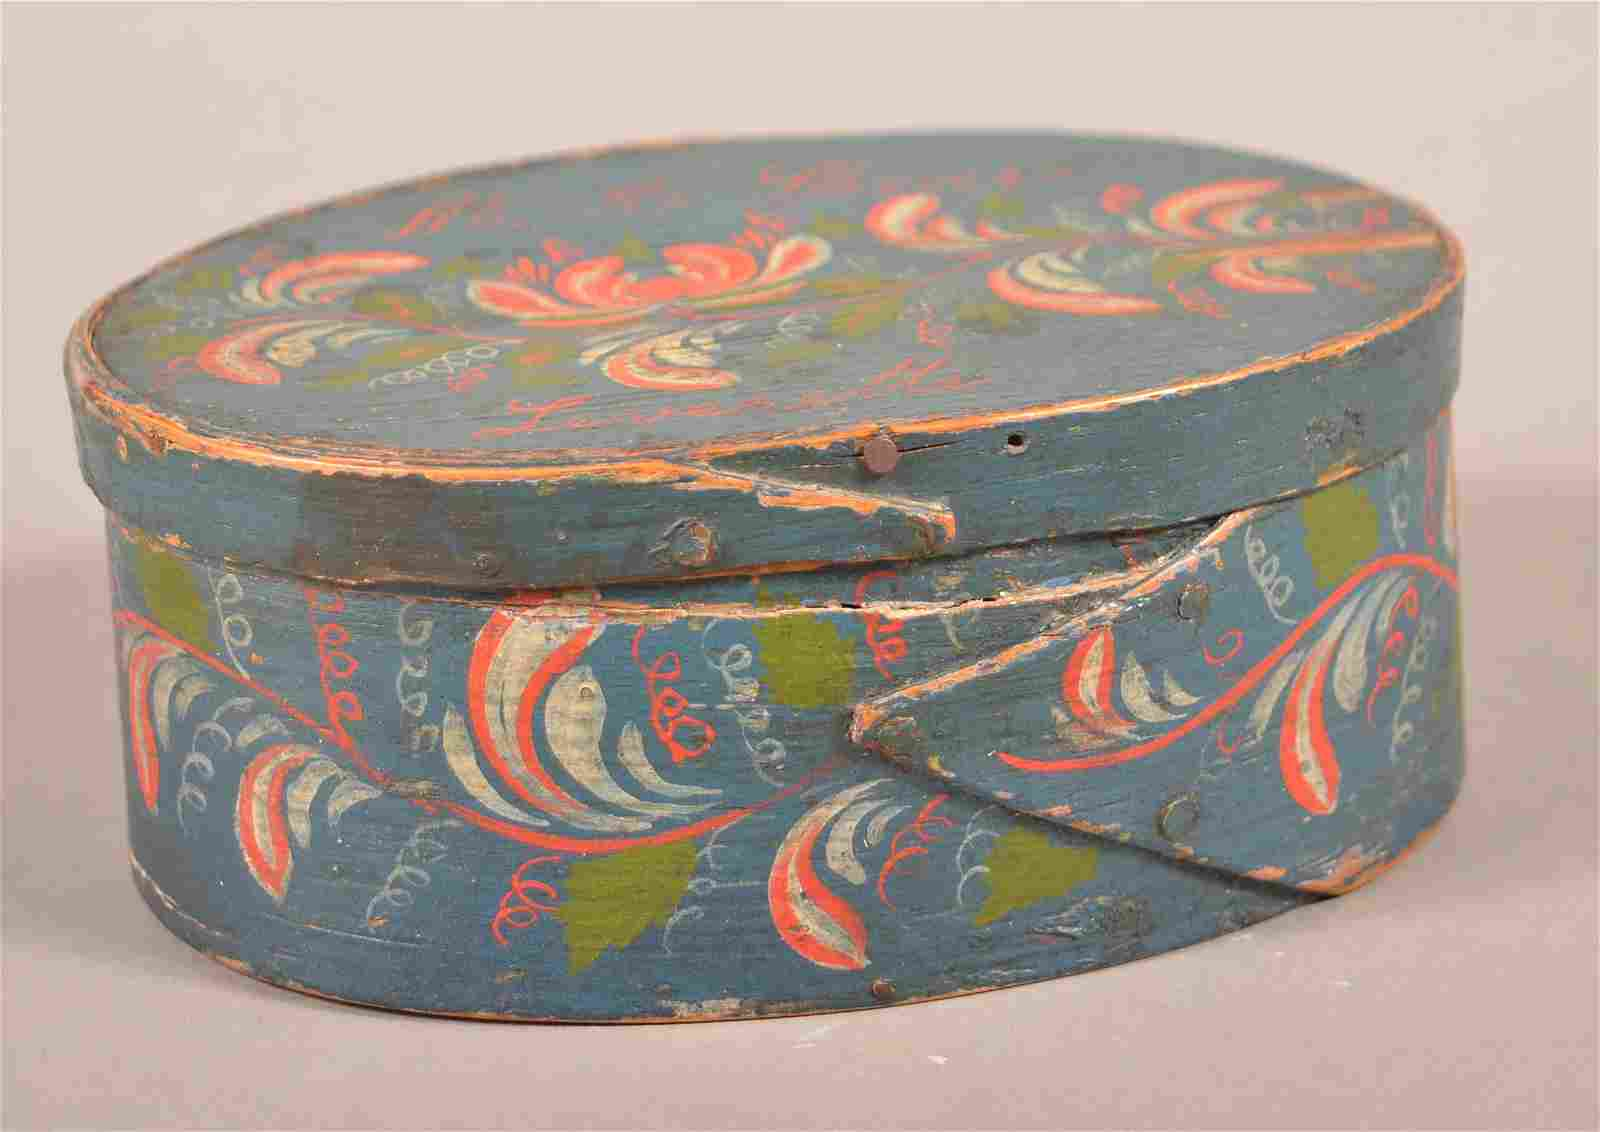 19th Century Painted Oval Bentwood Band Box.